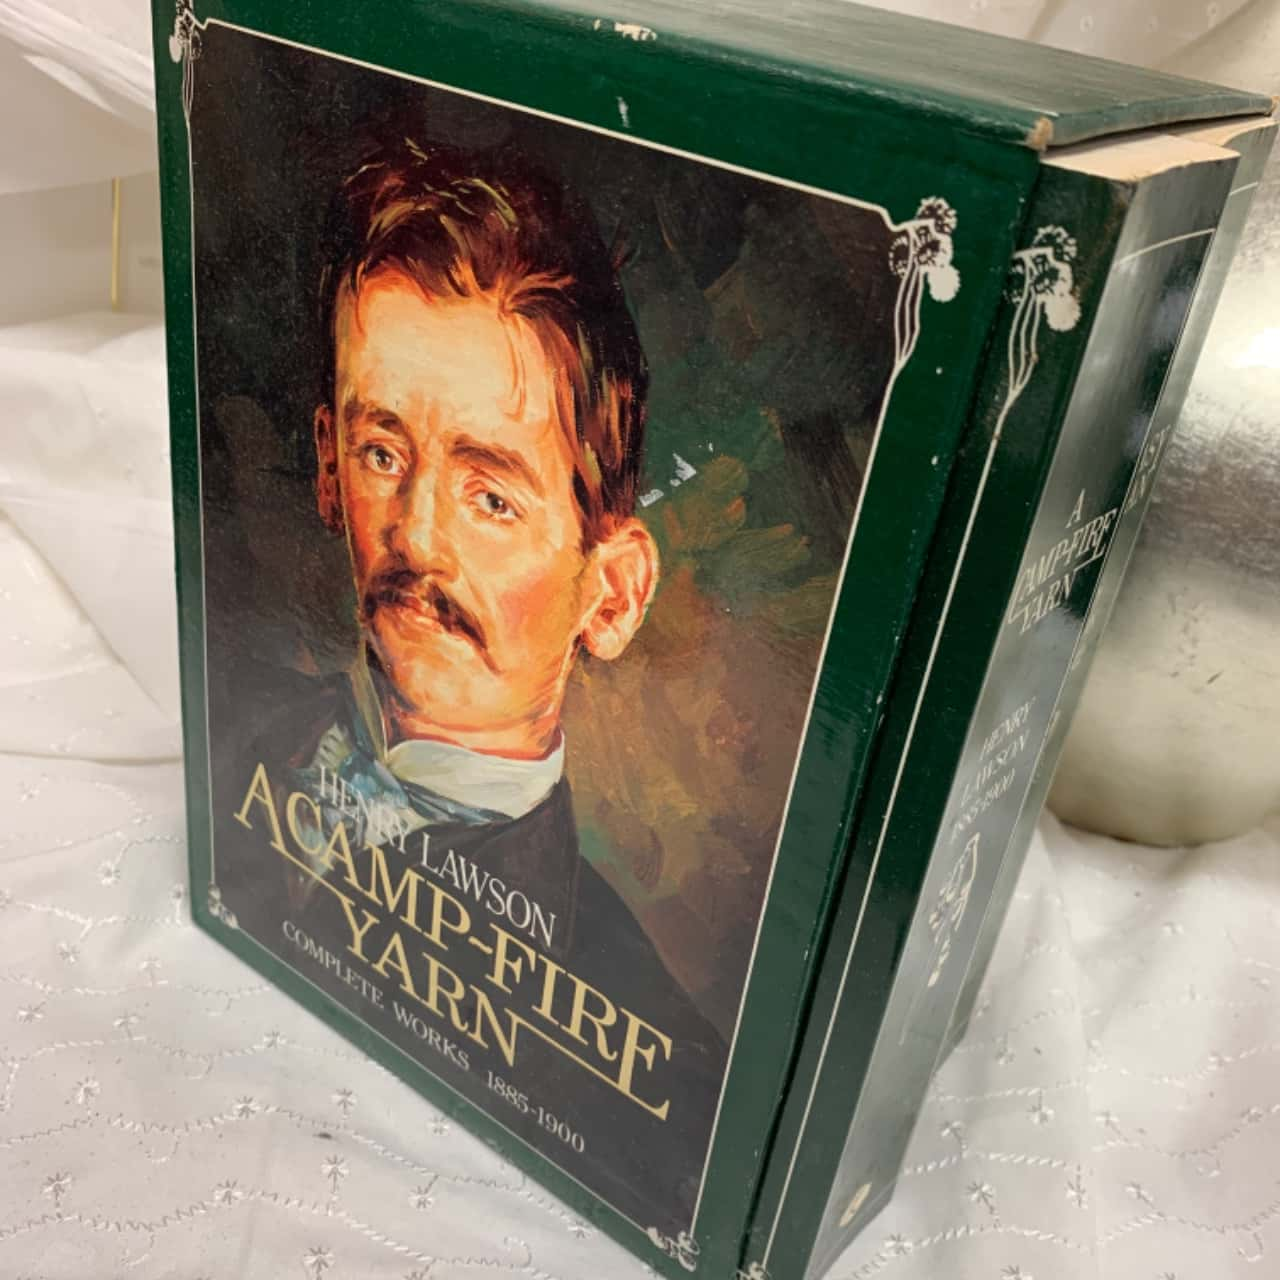 HENRY LAWSON complete works 1885-1900